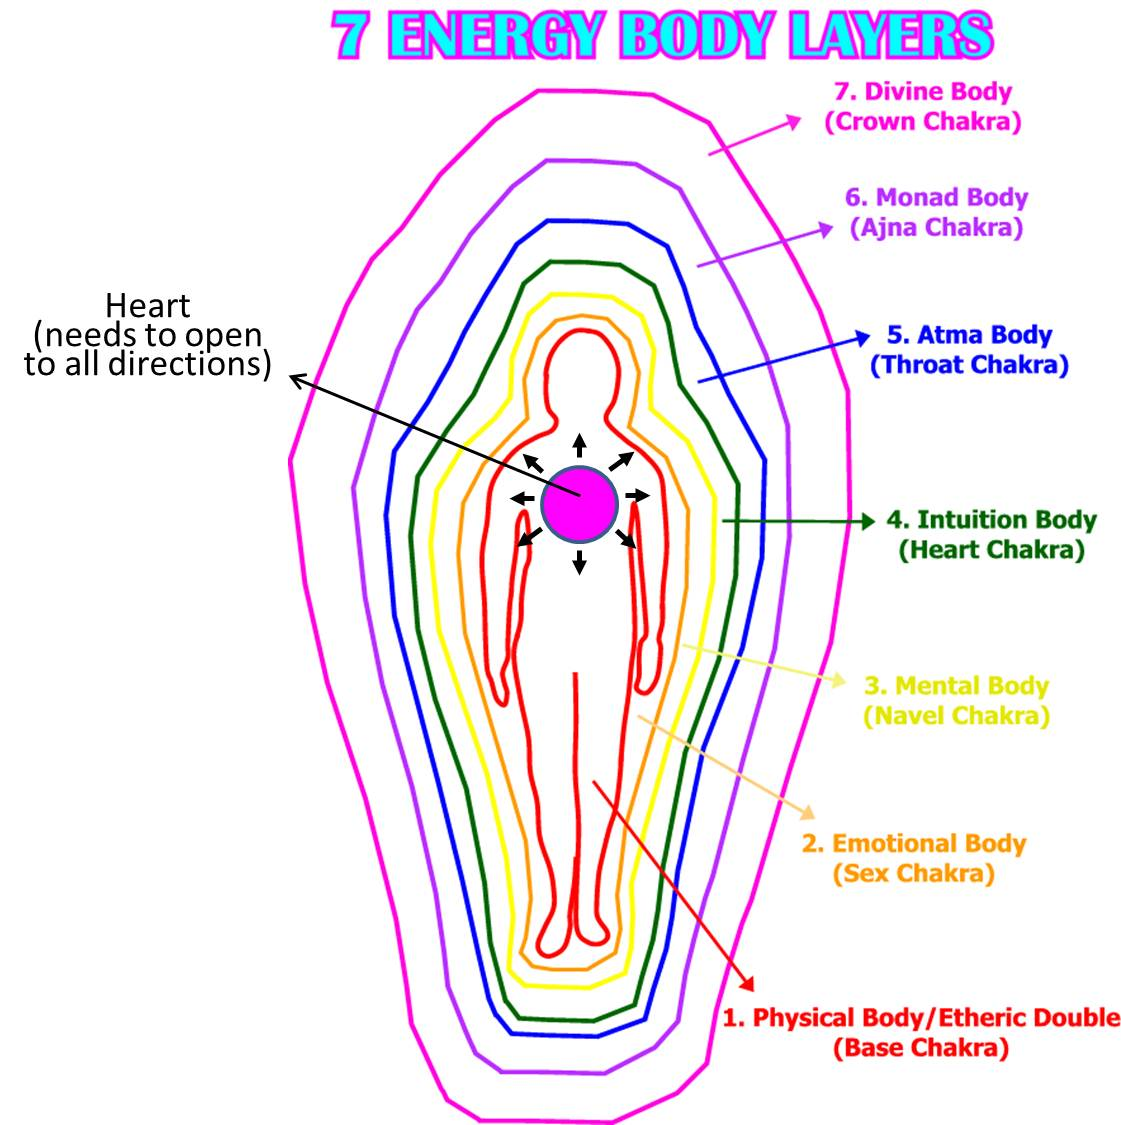 Heart Chakra Opening - Signs And Symptoms